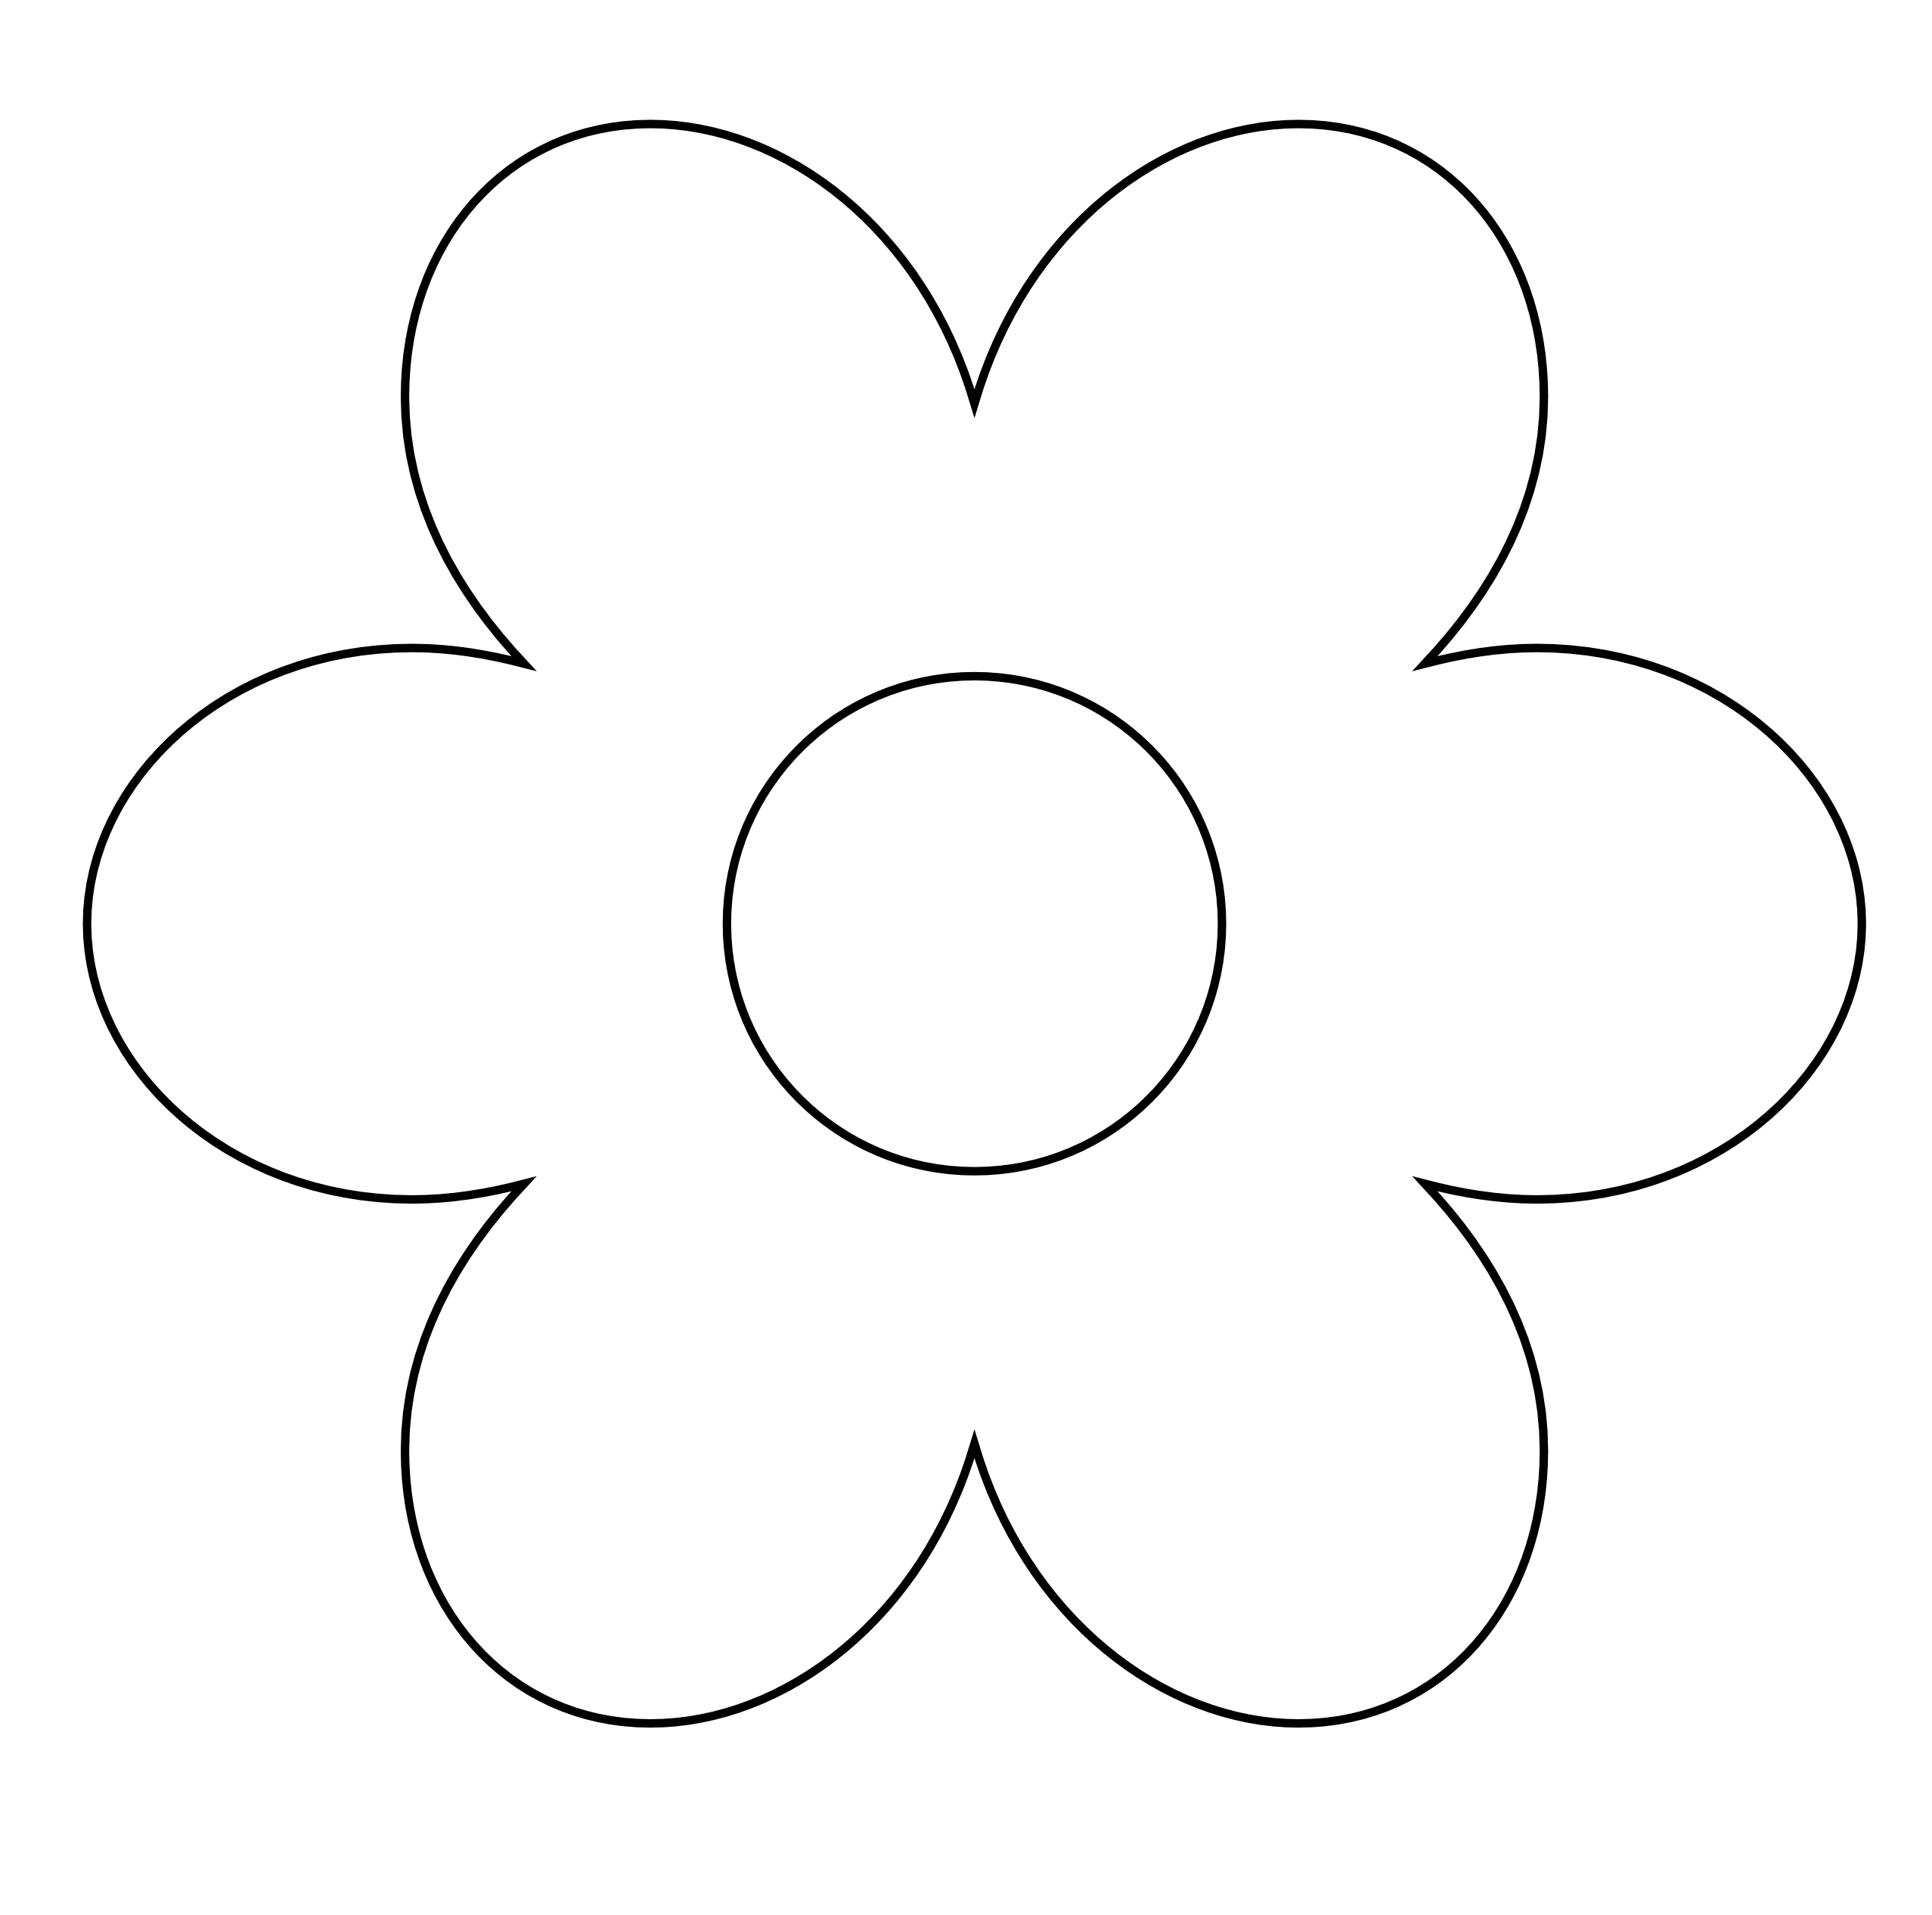 White flower clipart transparent graphic freeuse download White flower clipart png - ClipartFest graphic freeuse download